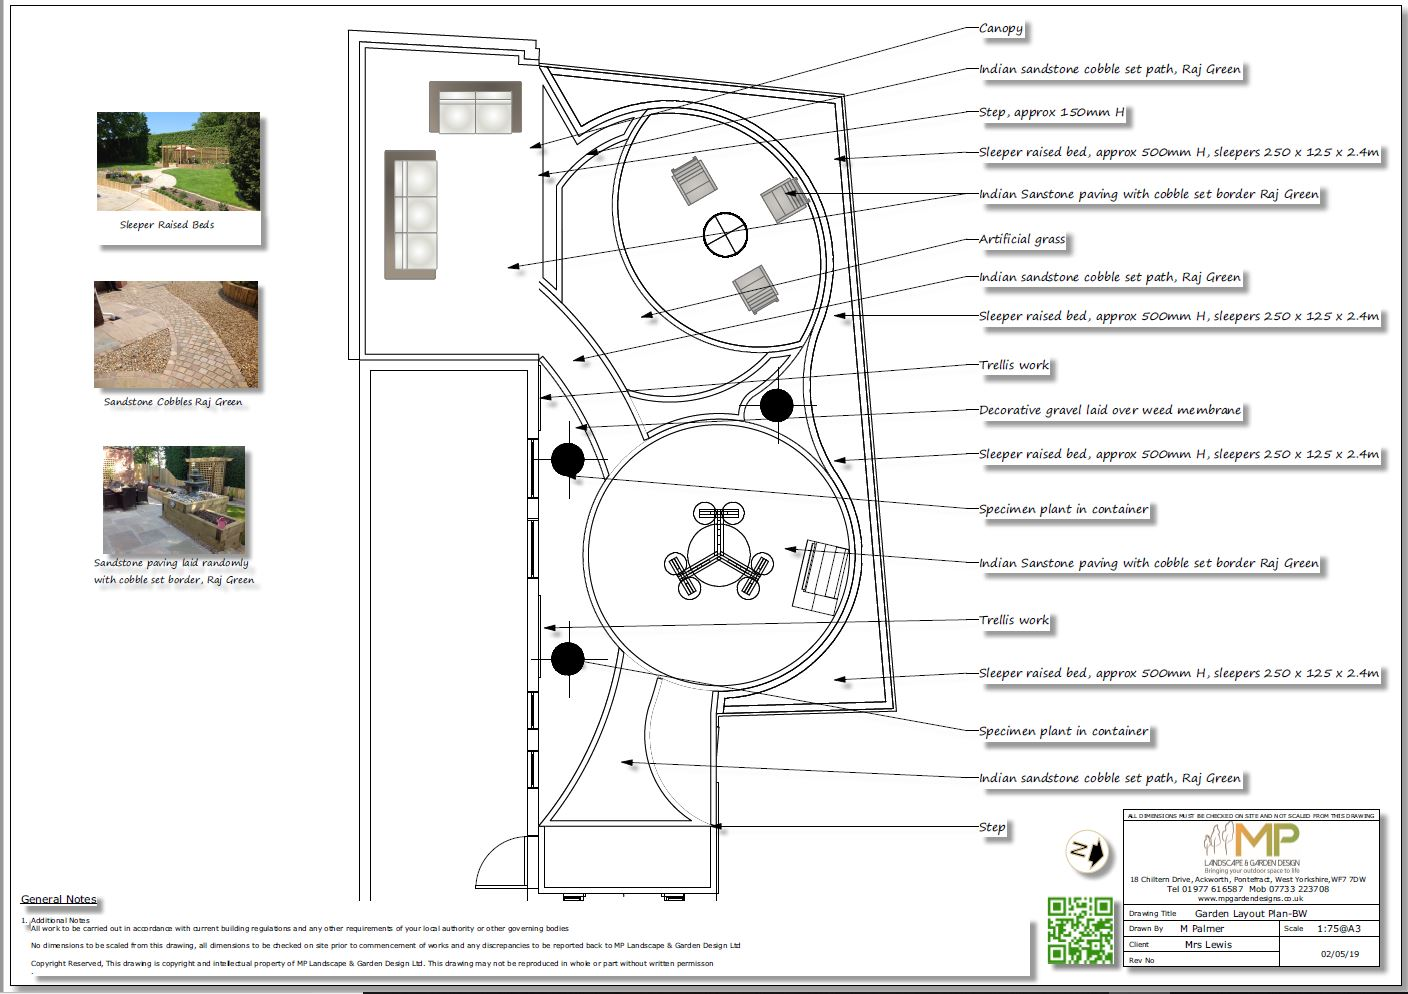 2, Garden layout plans-black and white, Castleford.